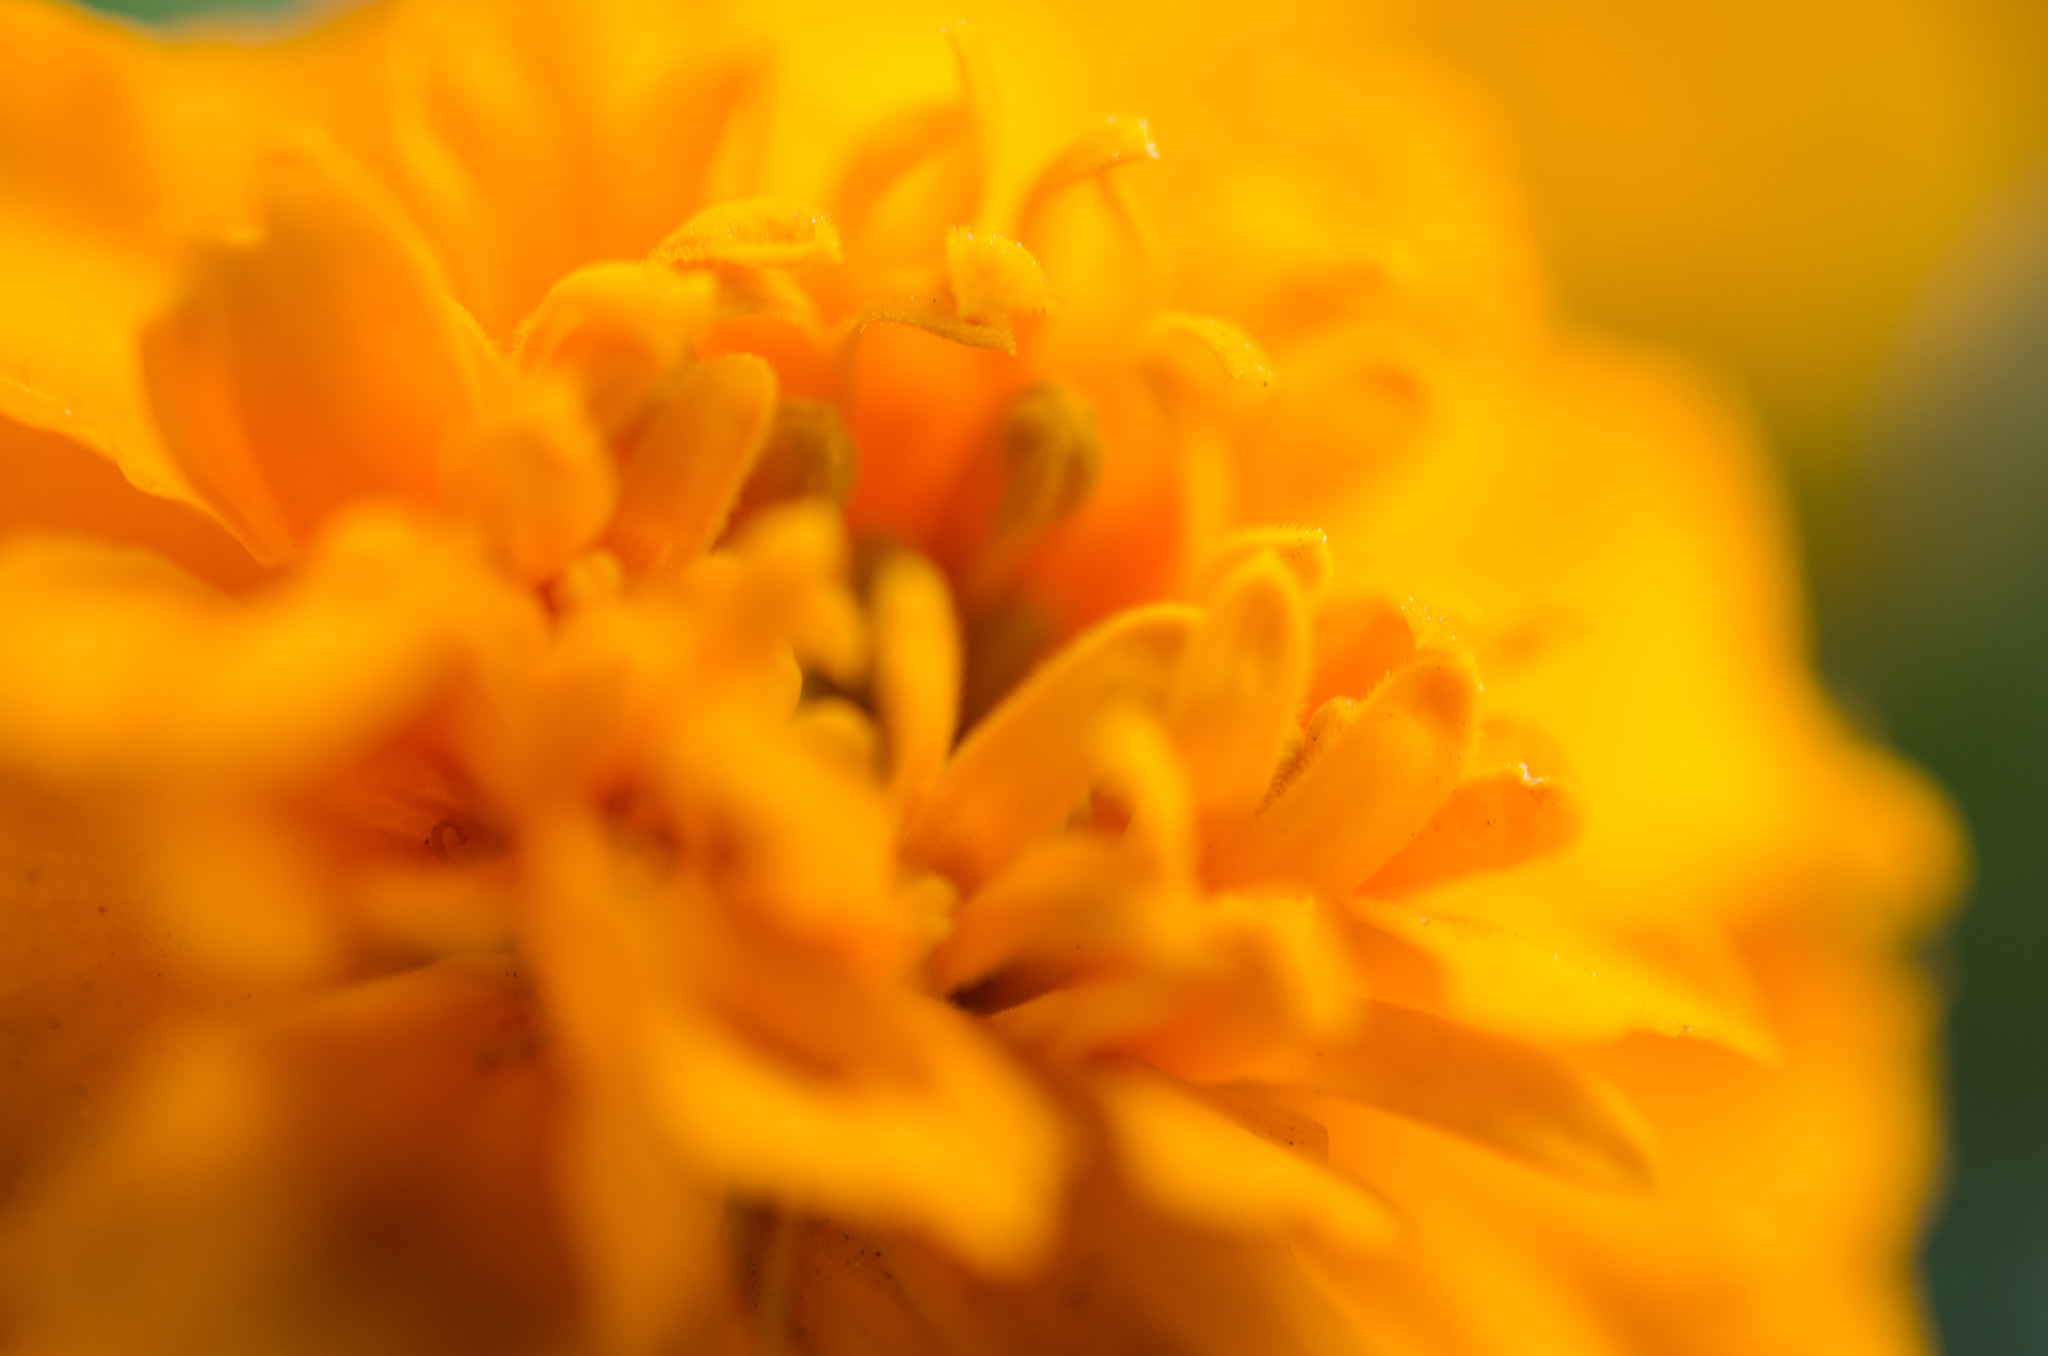 Photograph Yellow Flower by Soleil Neon on 500px